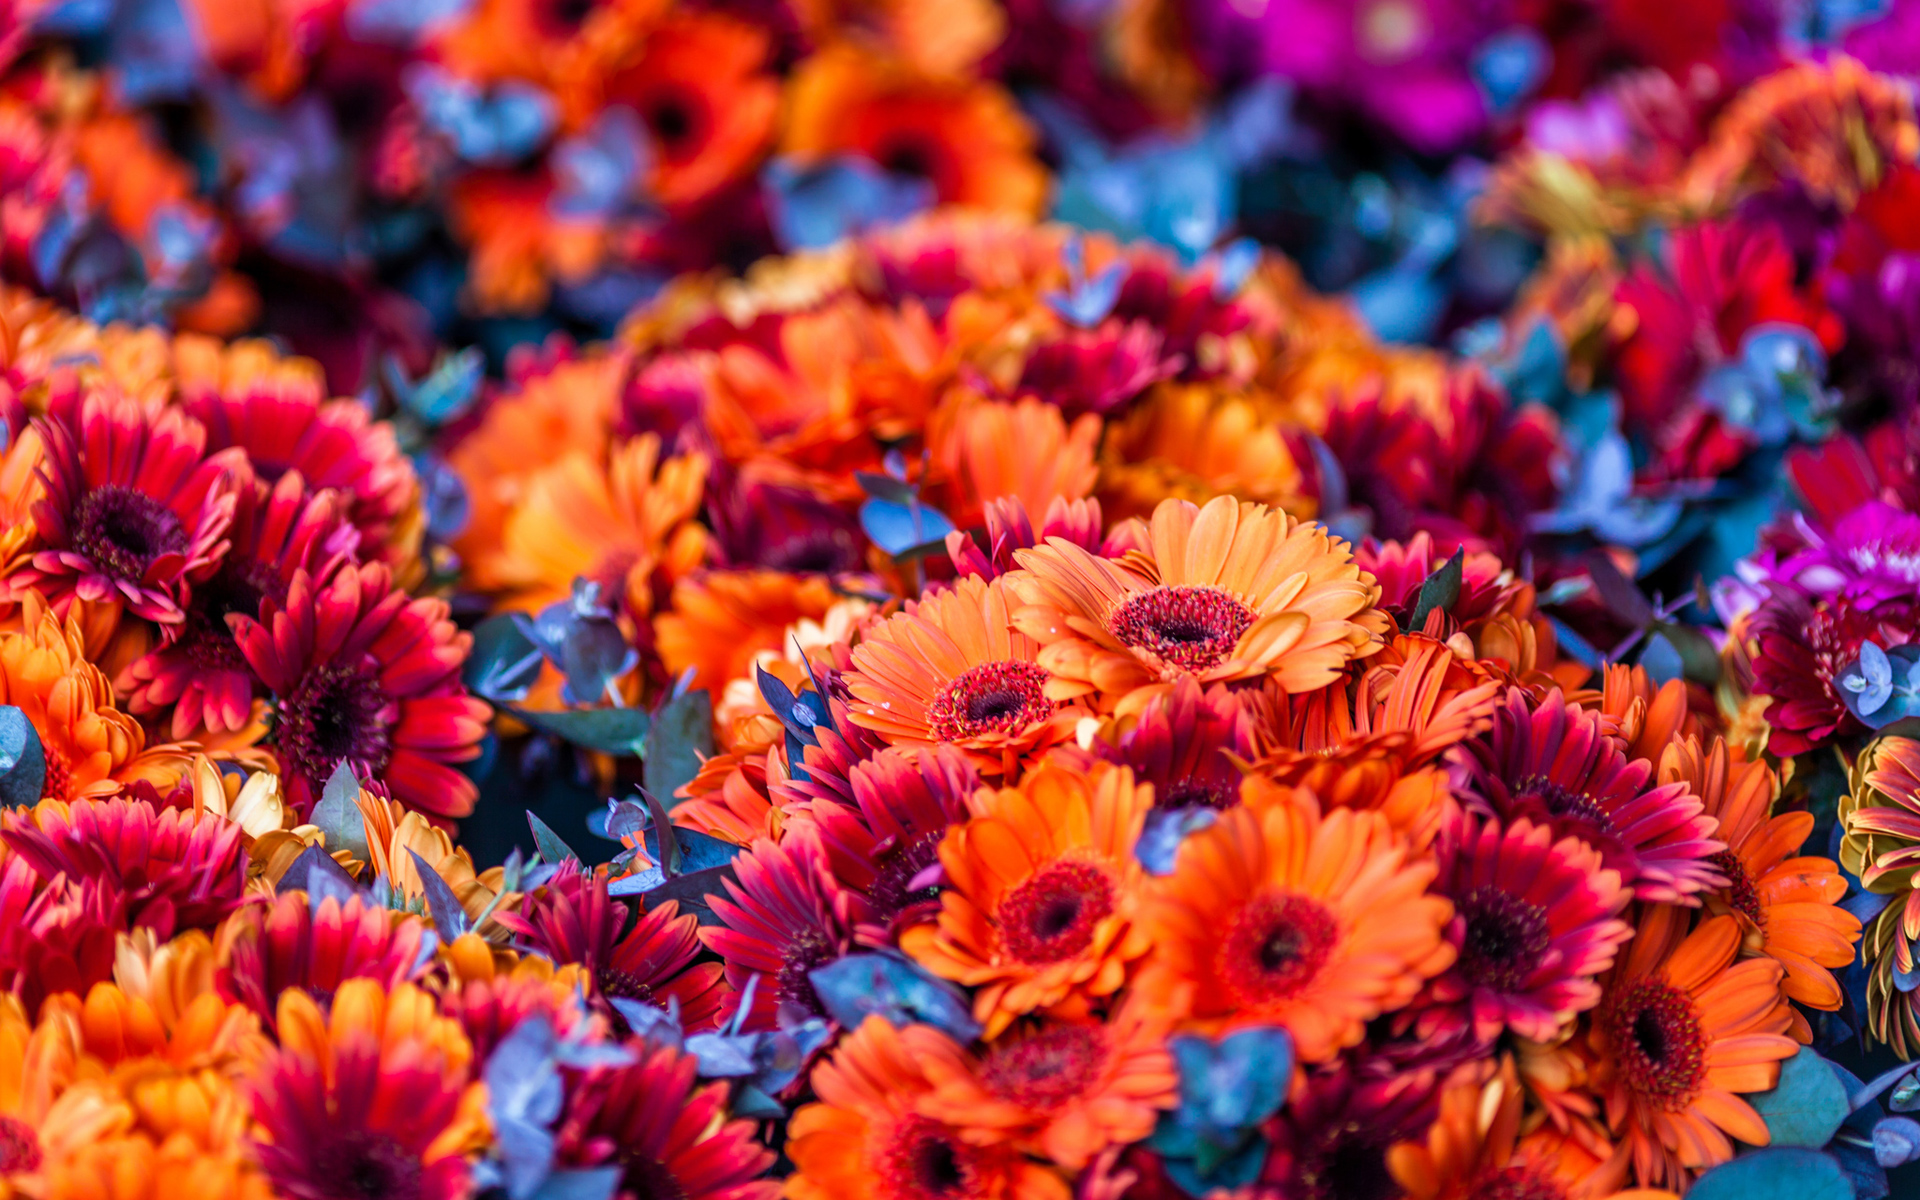 Colorful Flowers Blurred Background HD Wallpaper 1920x1200